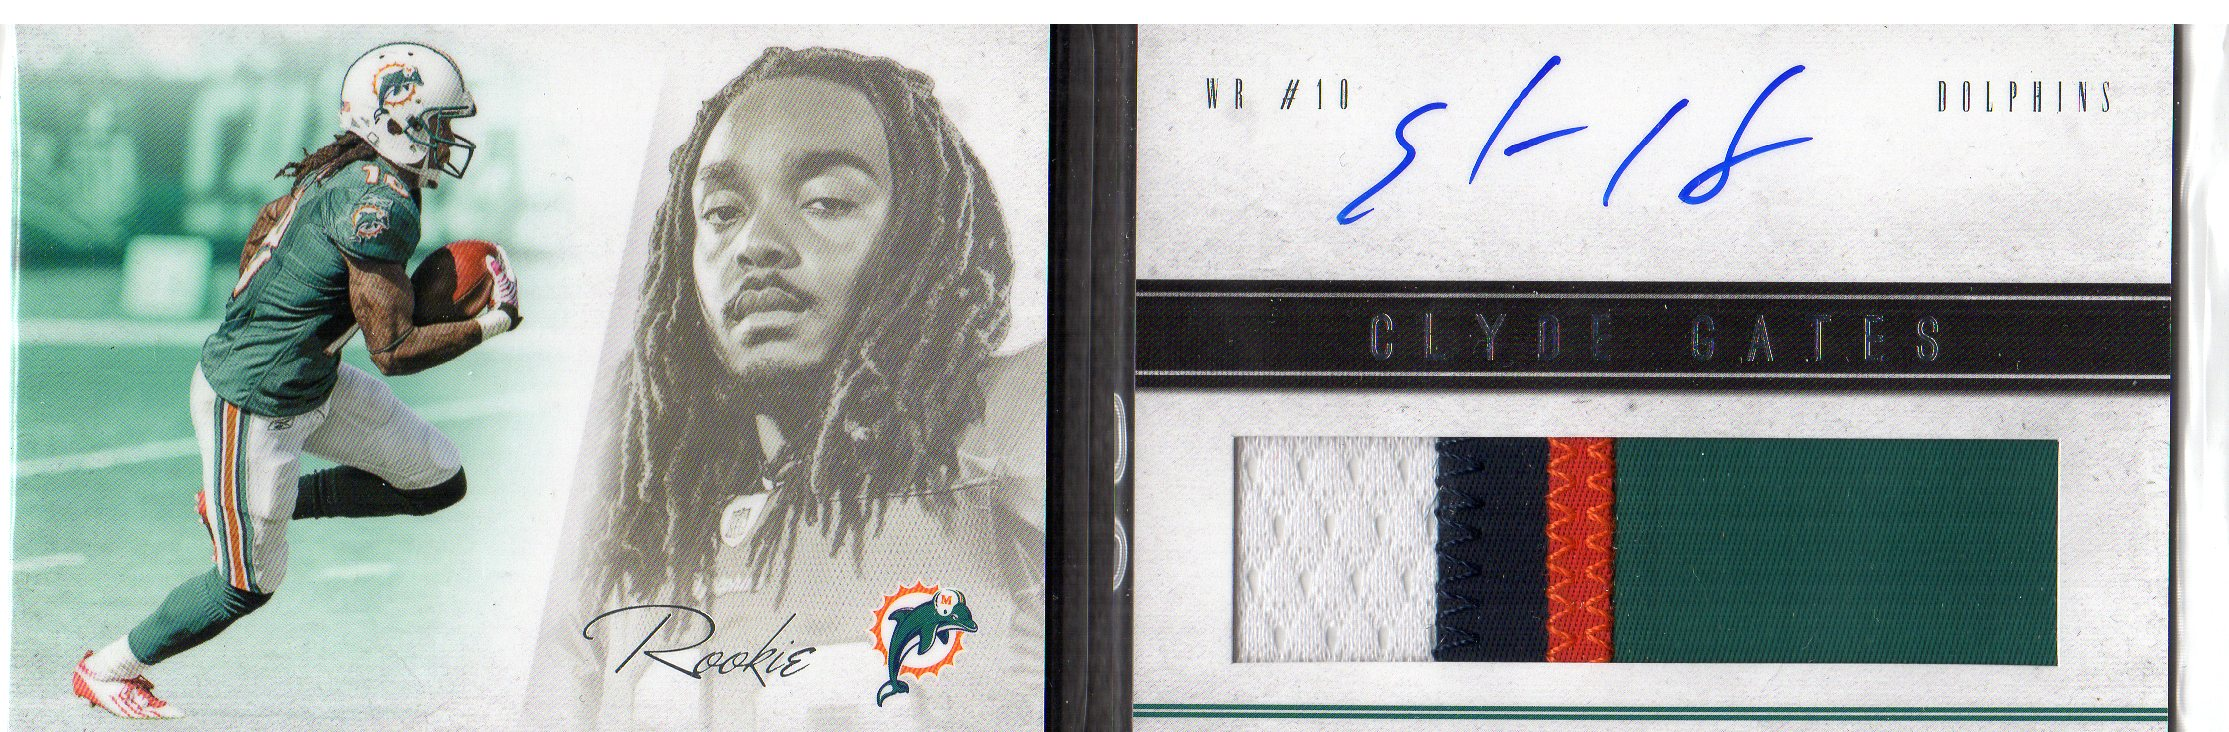 2011 Panini Playbook #109 Clyde Gates JSY AU/399 RC